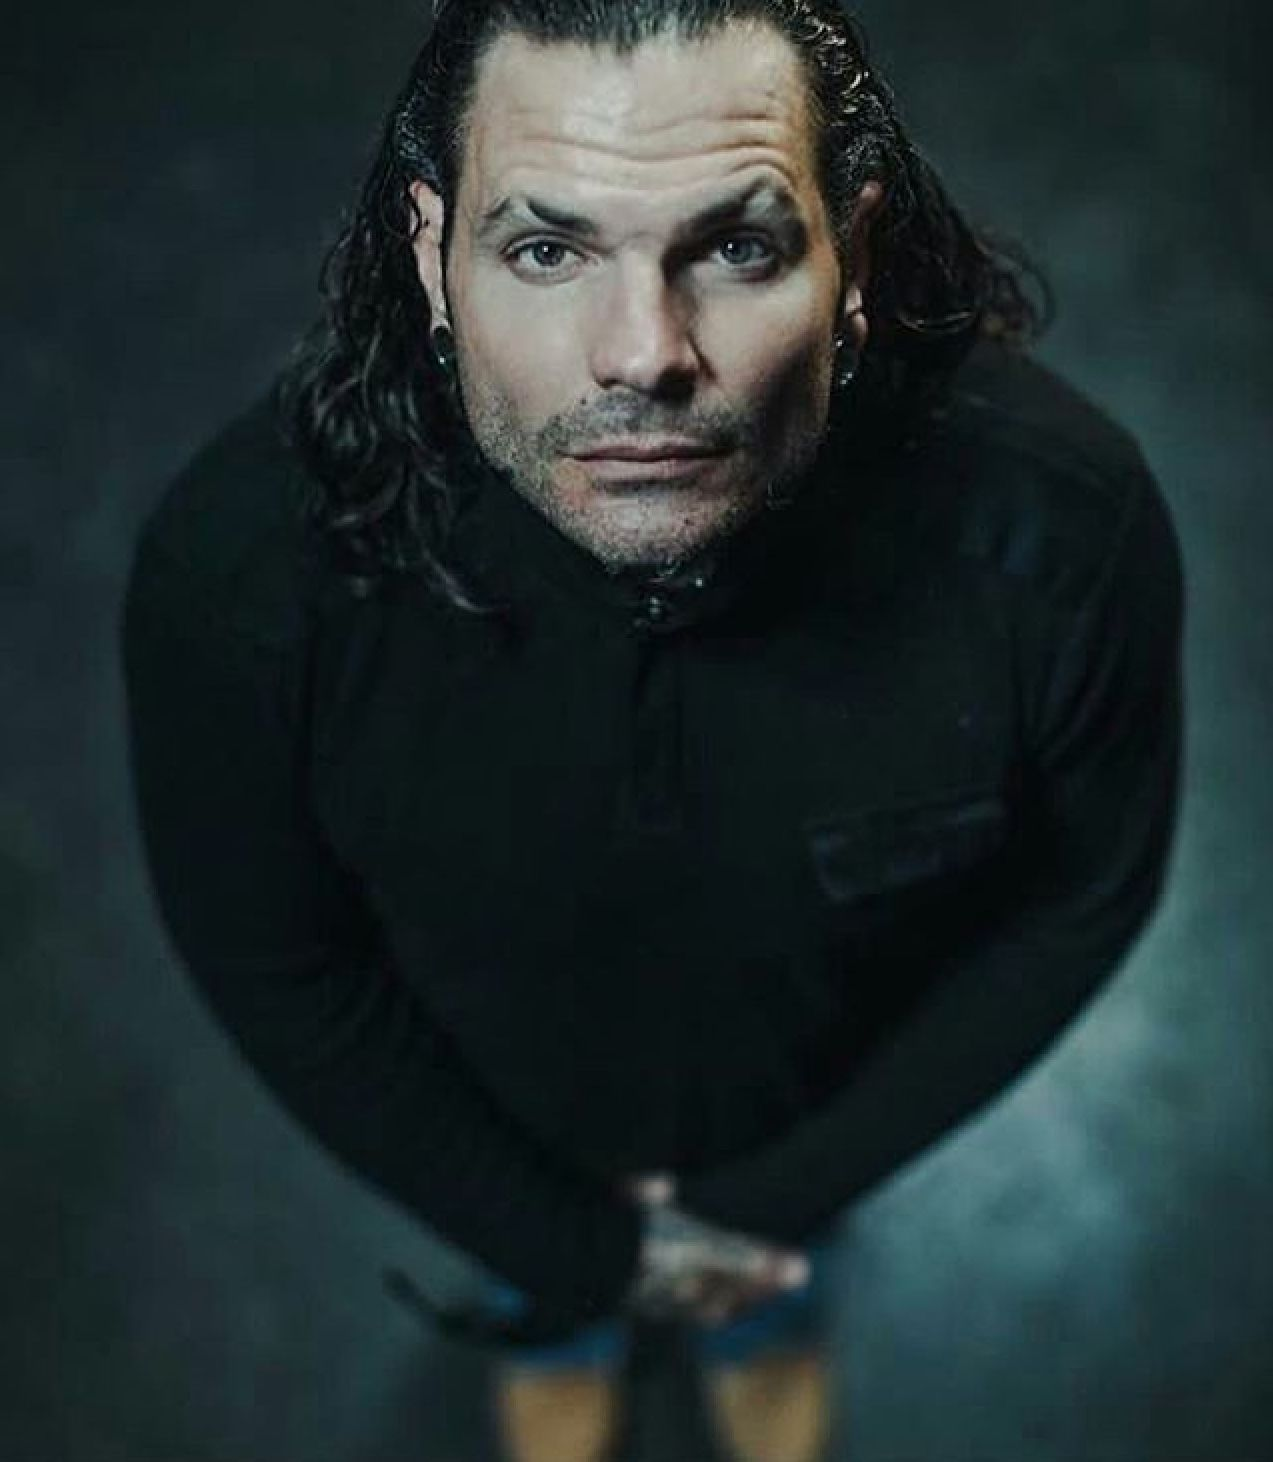 Pin By Sans On Wwe Pinterest Jeff Hardy Jeff Hardy Willow And Wwe